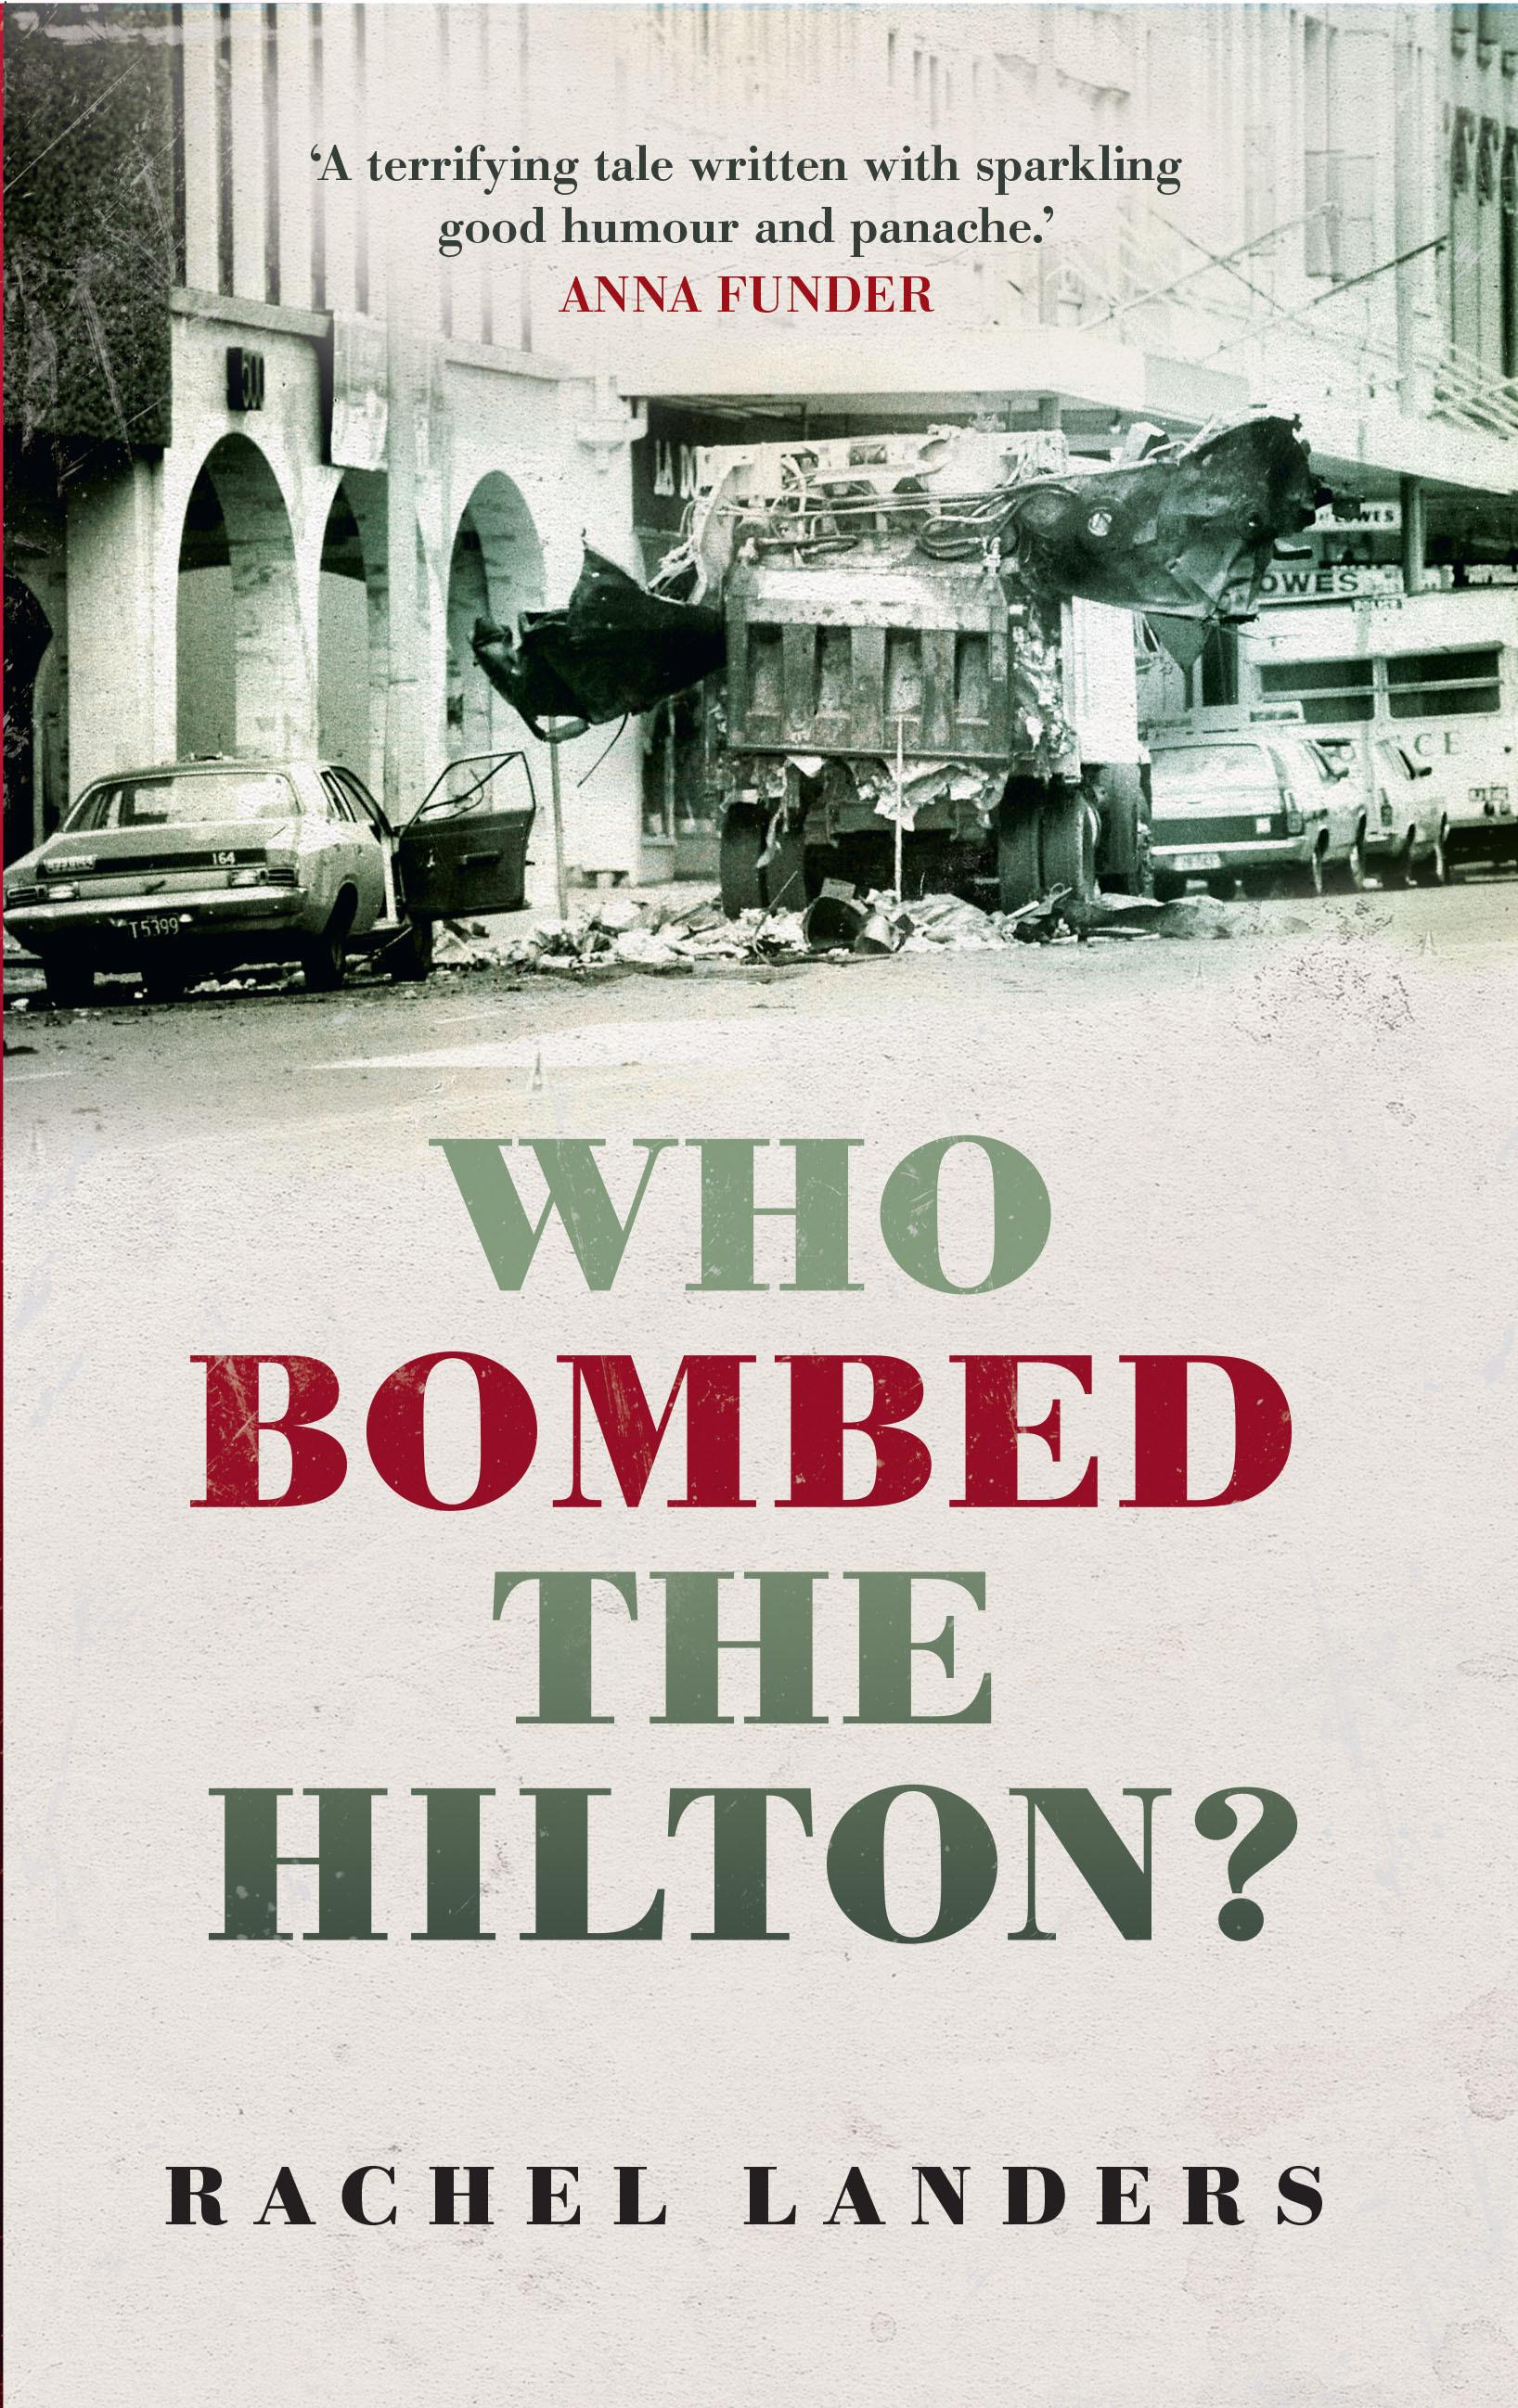 Who Bombed the Hilton?